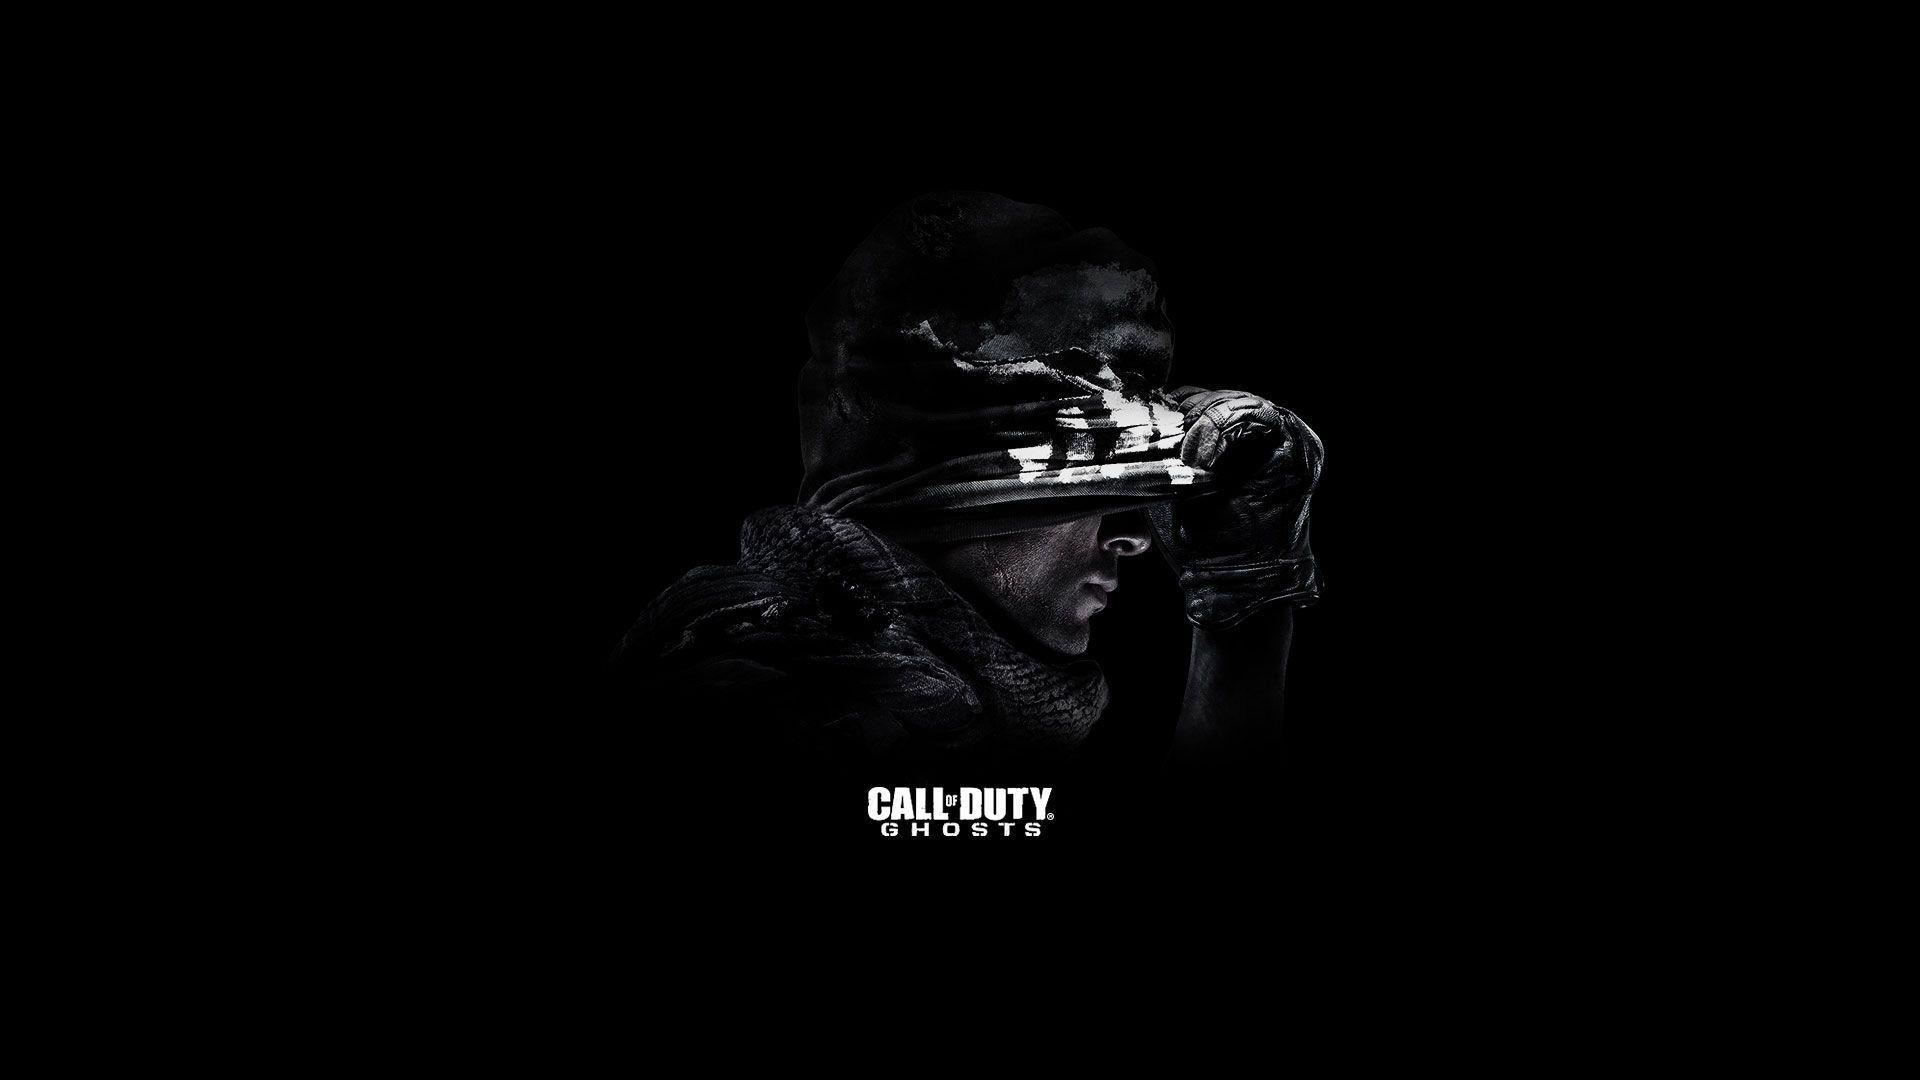 Call of Duty: Ghosts Wallpapers in HD